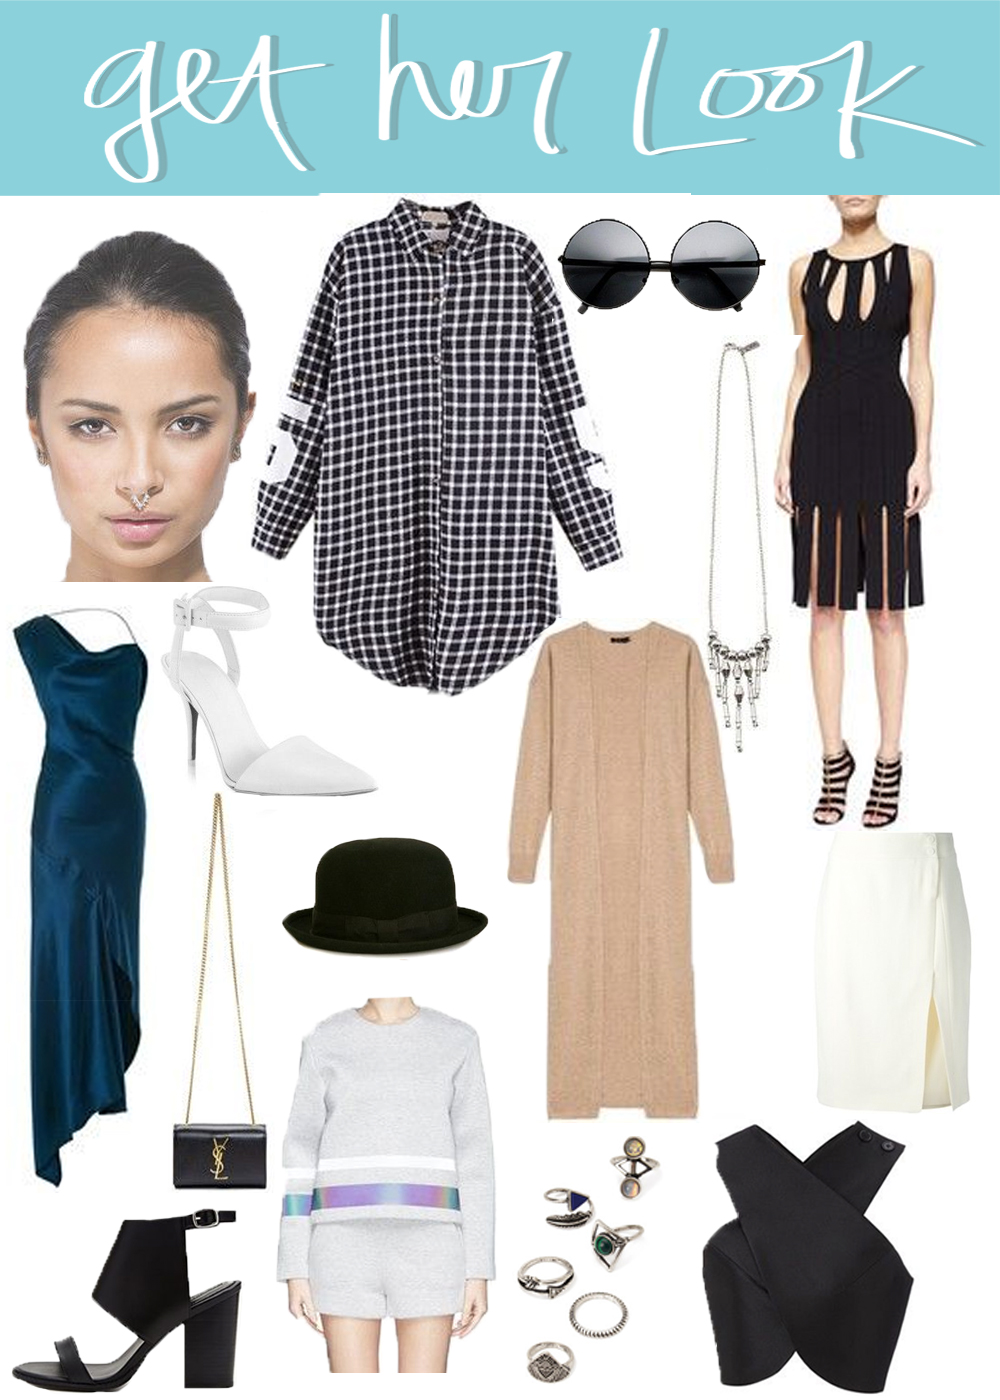 West L.A.  Juno Septum Piercing // Choie's  Oversized Black Plaid Shirt // Zerouv  Oversized Round Sunglasses // Vanessa Mooney  Moth to Flame Necklace // Cushnie et Ochs  Cutout Paneled Skirt Dress // Cushnie et Ochs  Double Charmeuse Nile Dress // Alexander Wang  Leather Point-Toe Pumps // Urban Excess  Pick Laurel Soft Bowler Hat // Joseph  Cashmere Long Cardigan // Jason Wu  Side Slit Pencil Skirt // Saint Laurent  Chain Clutch (Similar) // Forever 21  Leather Ankle Cuff Sandal // Forever 21  Etched in Stone Midi Rings // Carven  Black Satin Cropped Top